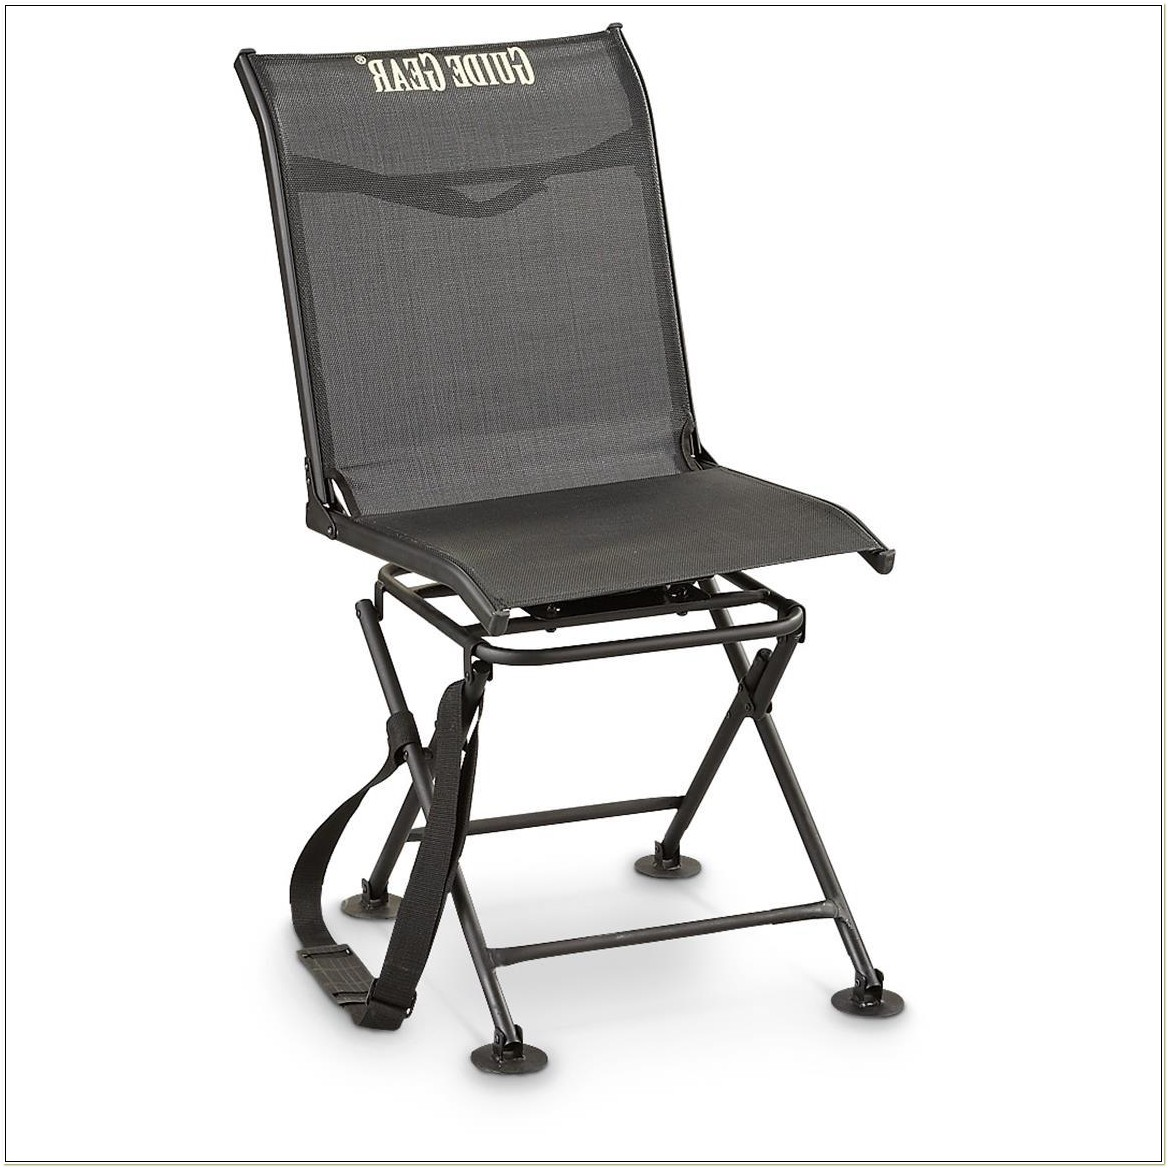 Best Chairs For Hunting Blinds